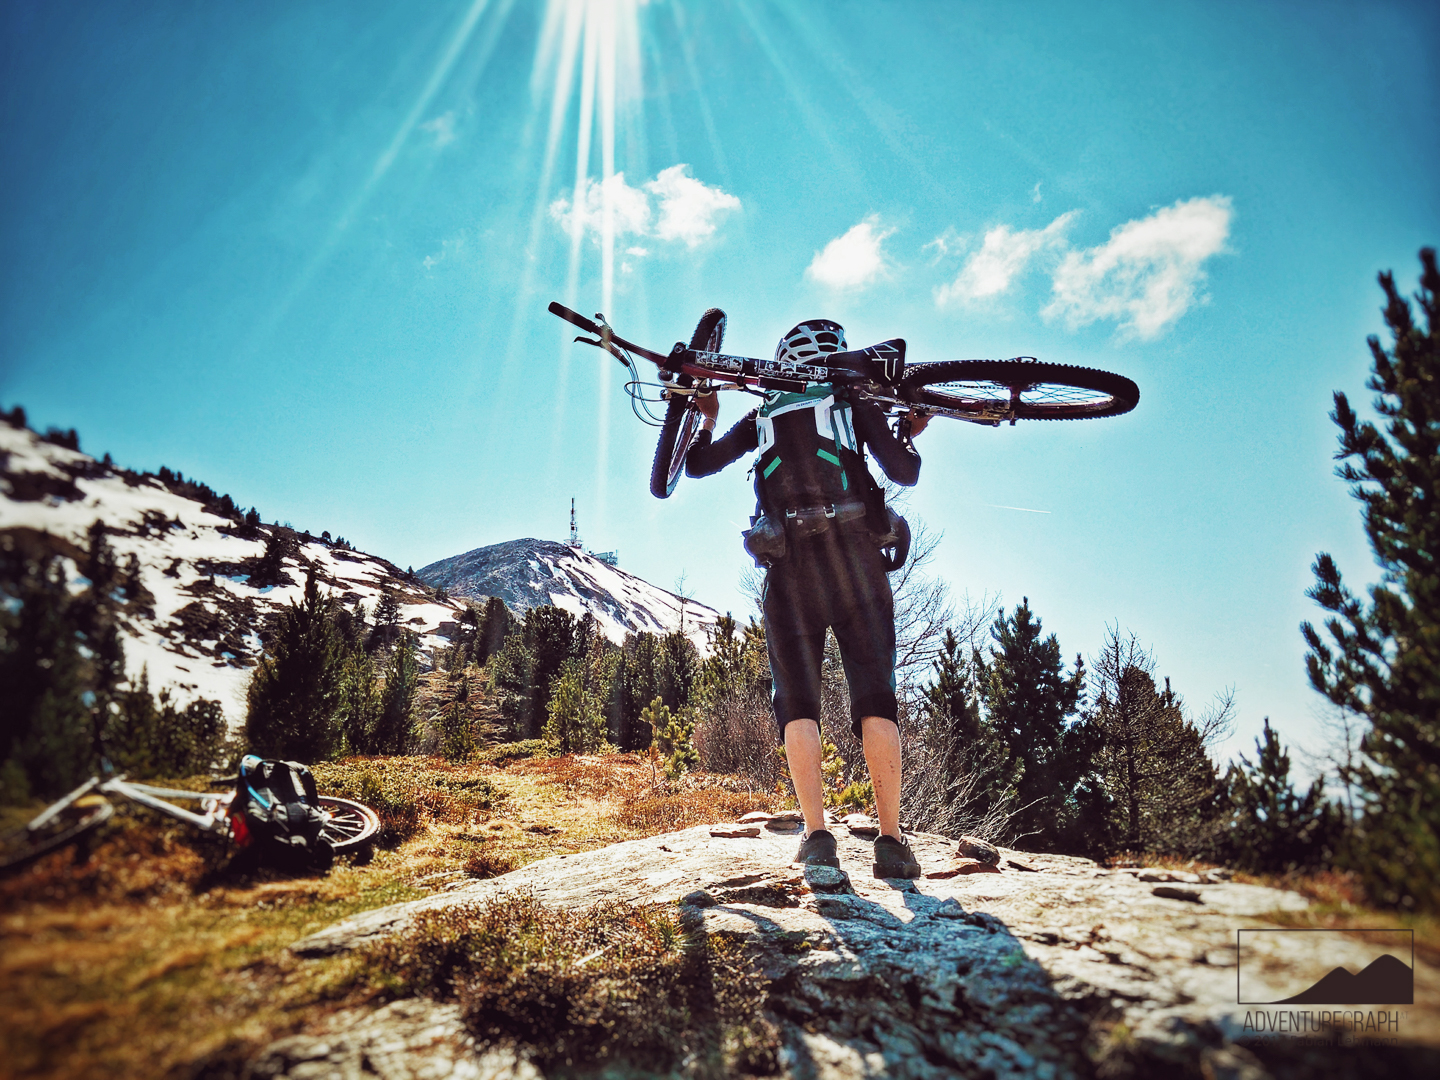 Idea for a enduro, MTB or mountainbike movie: Bike hike in Tyrol, austria.